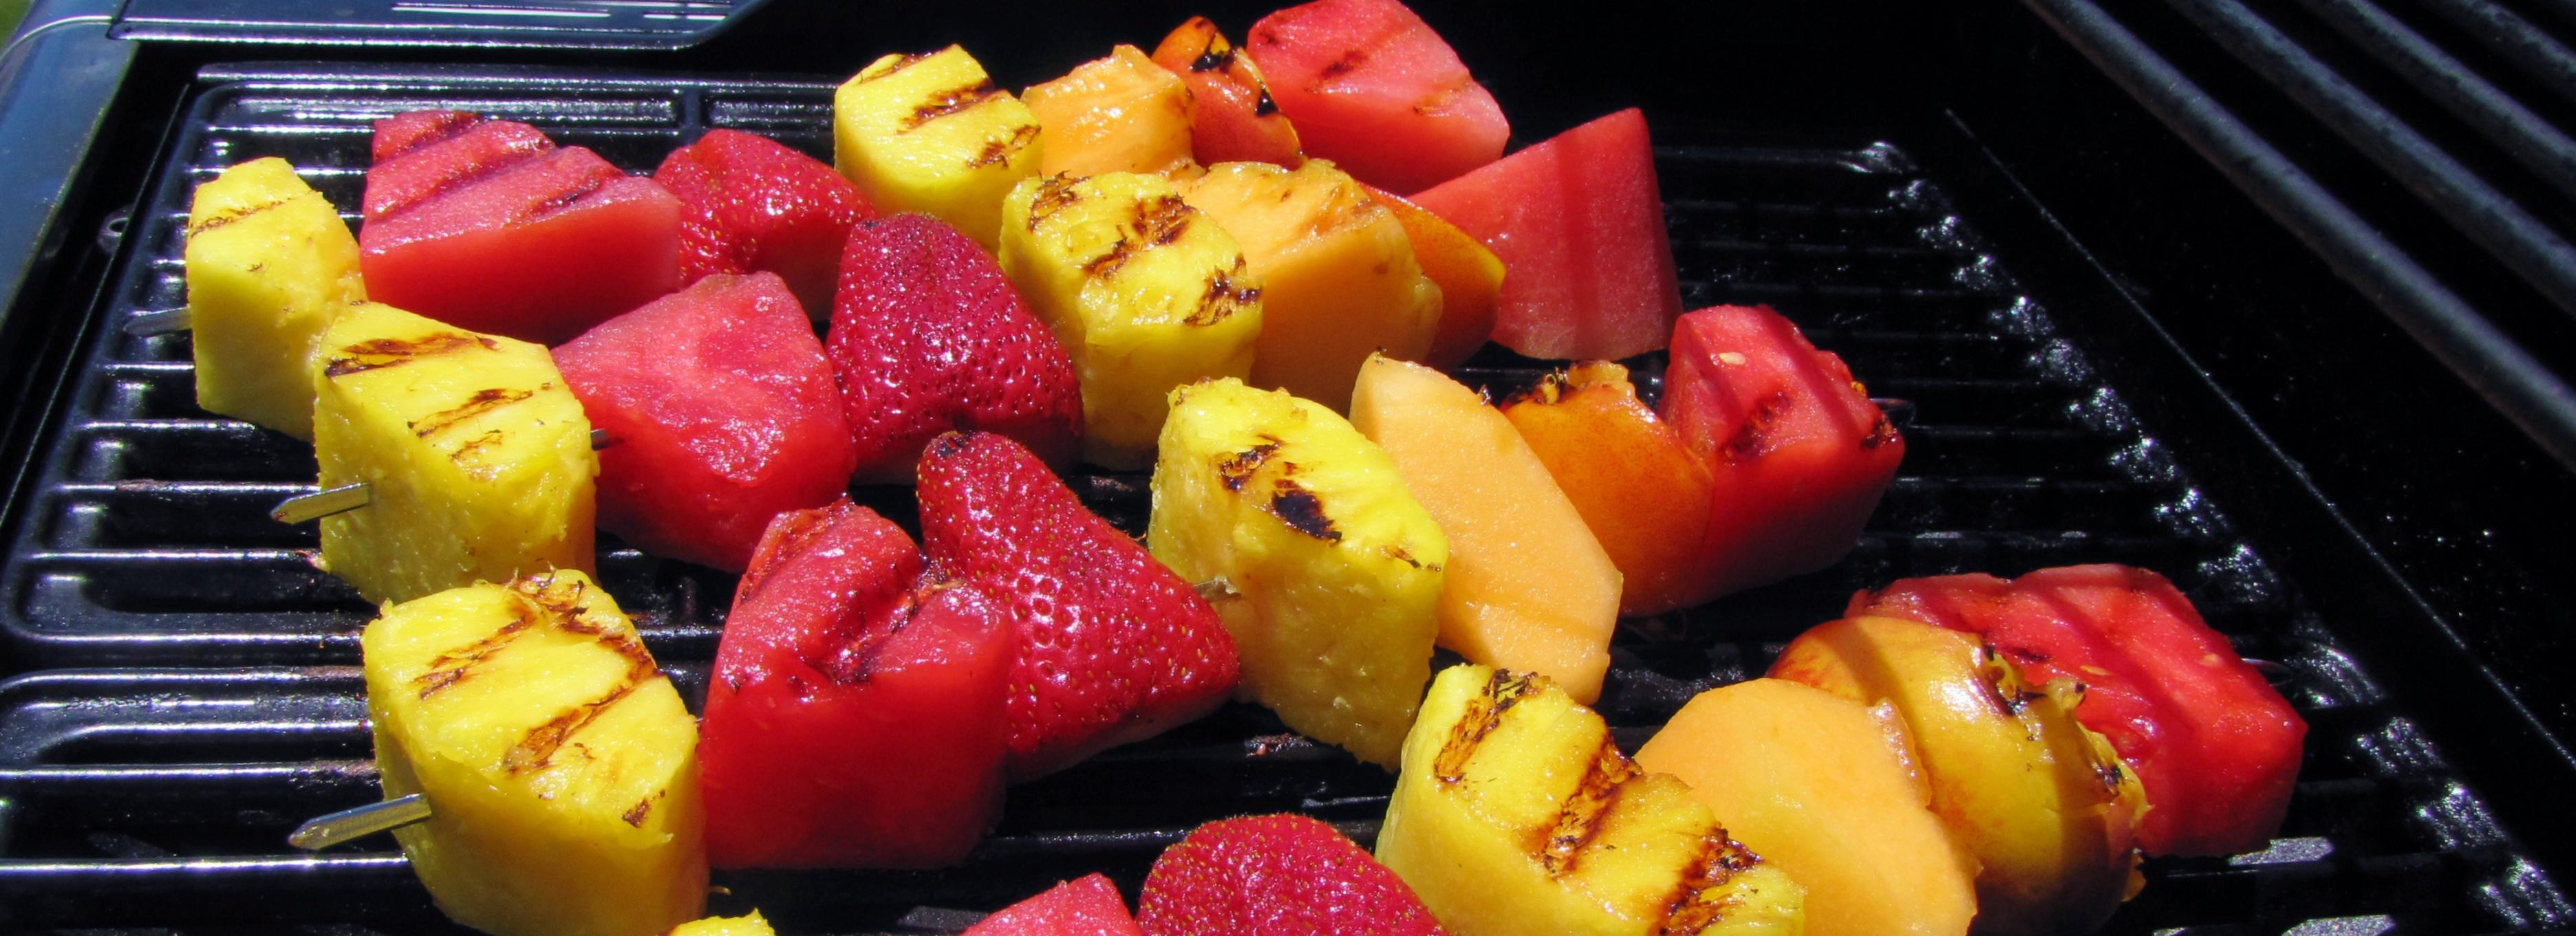 BBQ 101 Grilling Veggies and Fruits